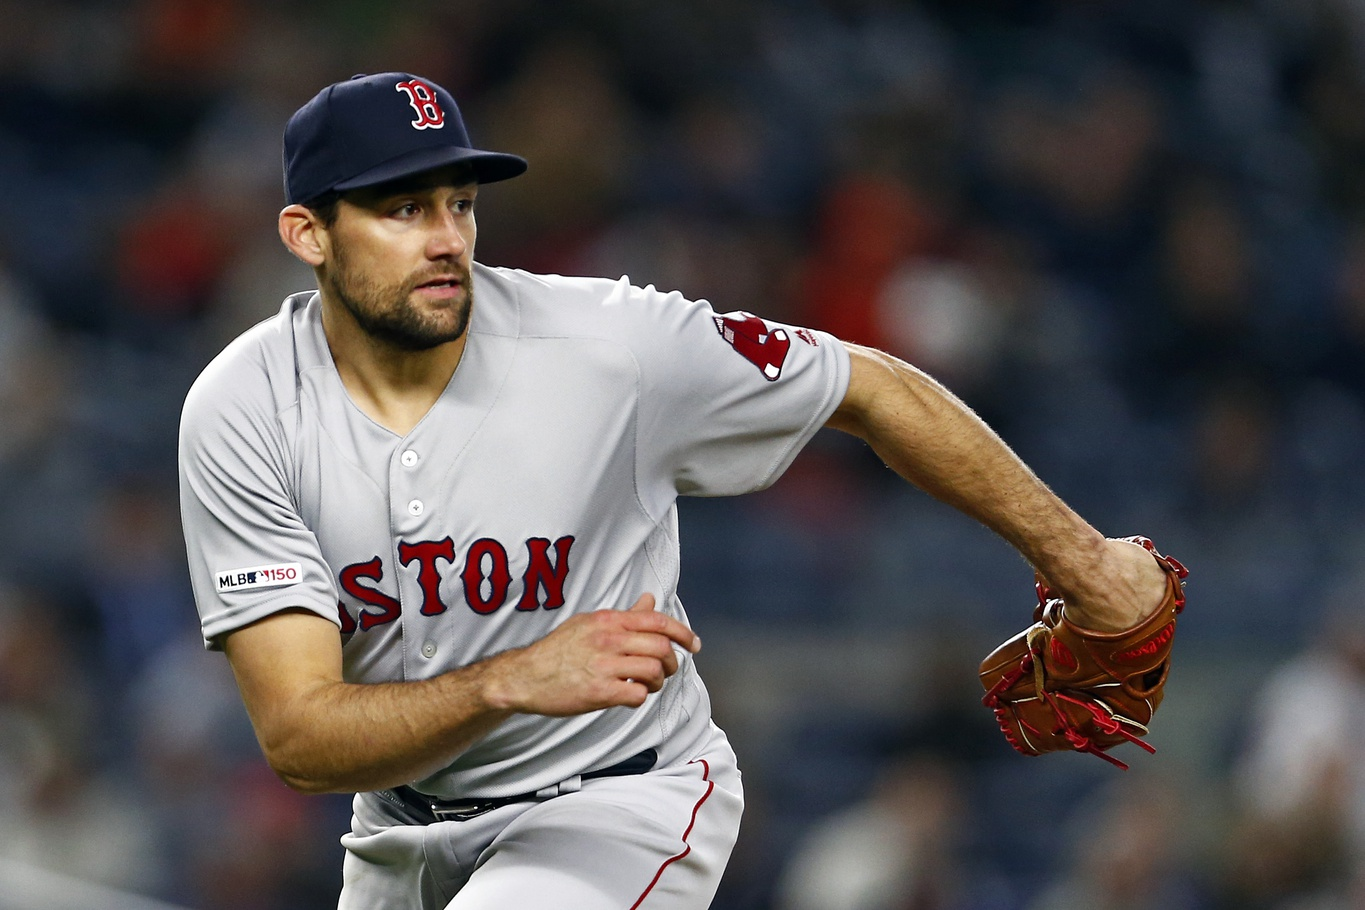 Nathan Eovaldi likely will return to Red Sox over weekend